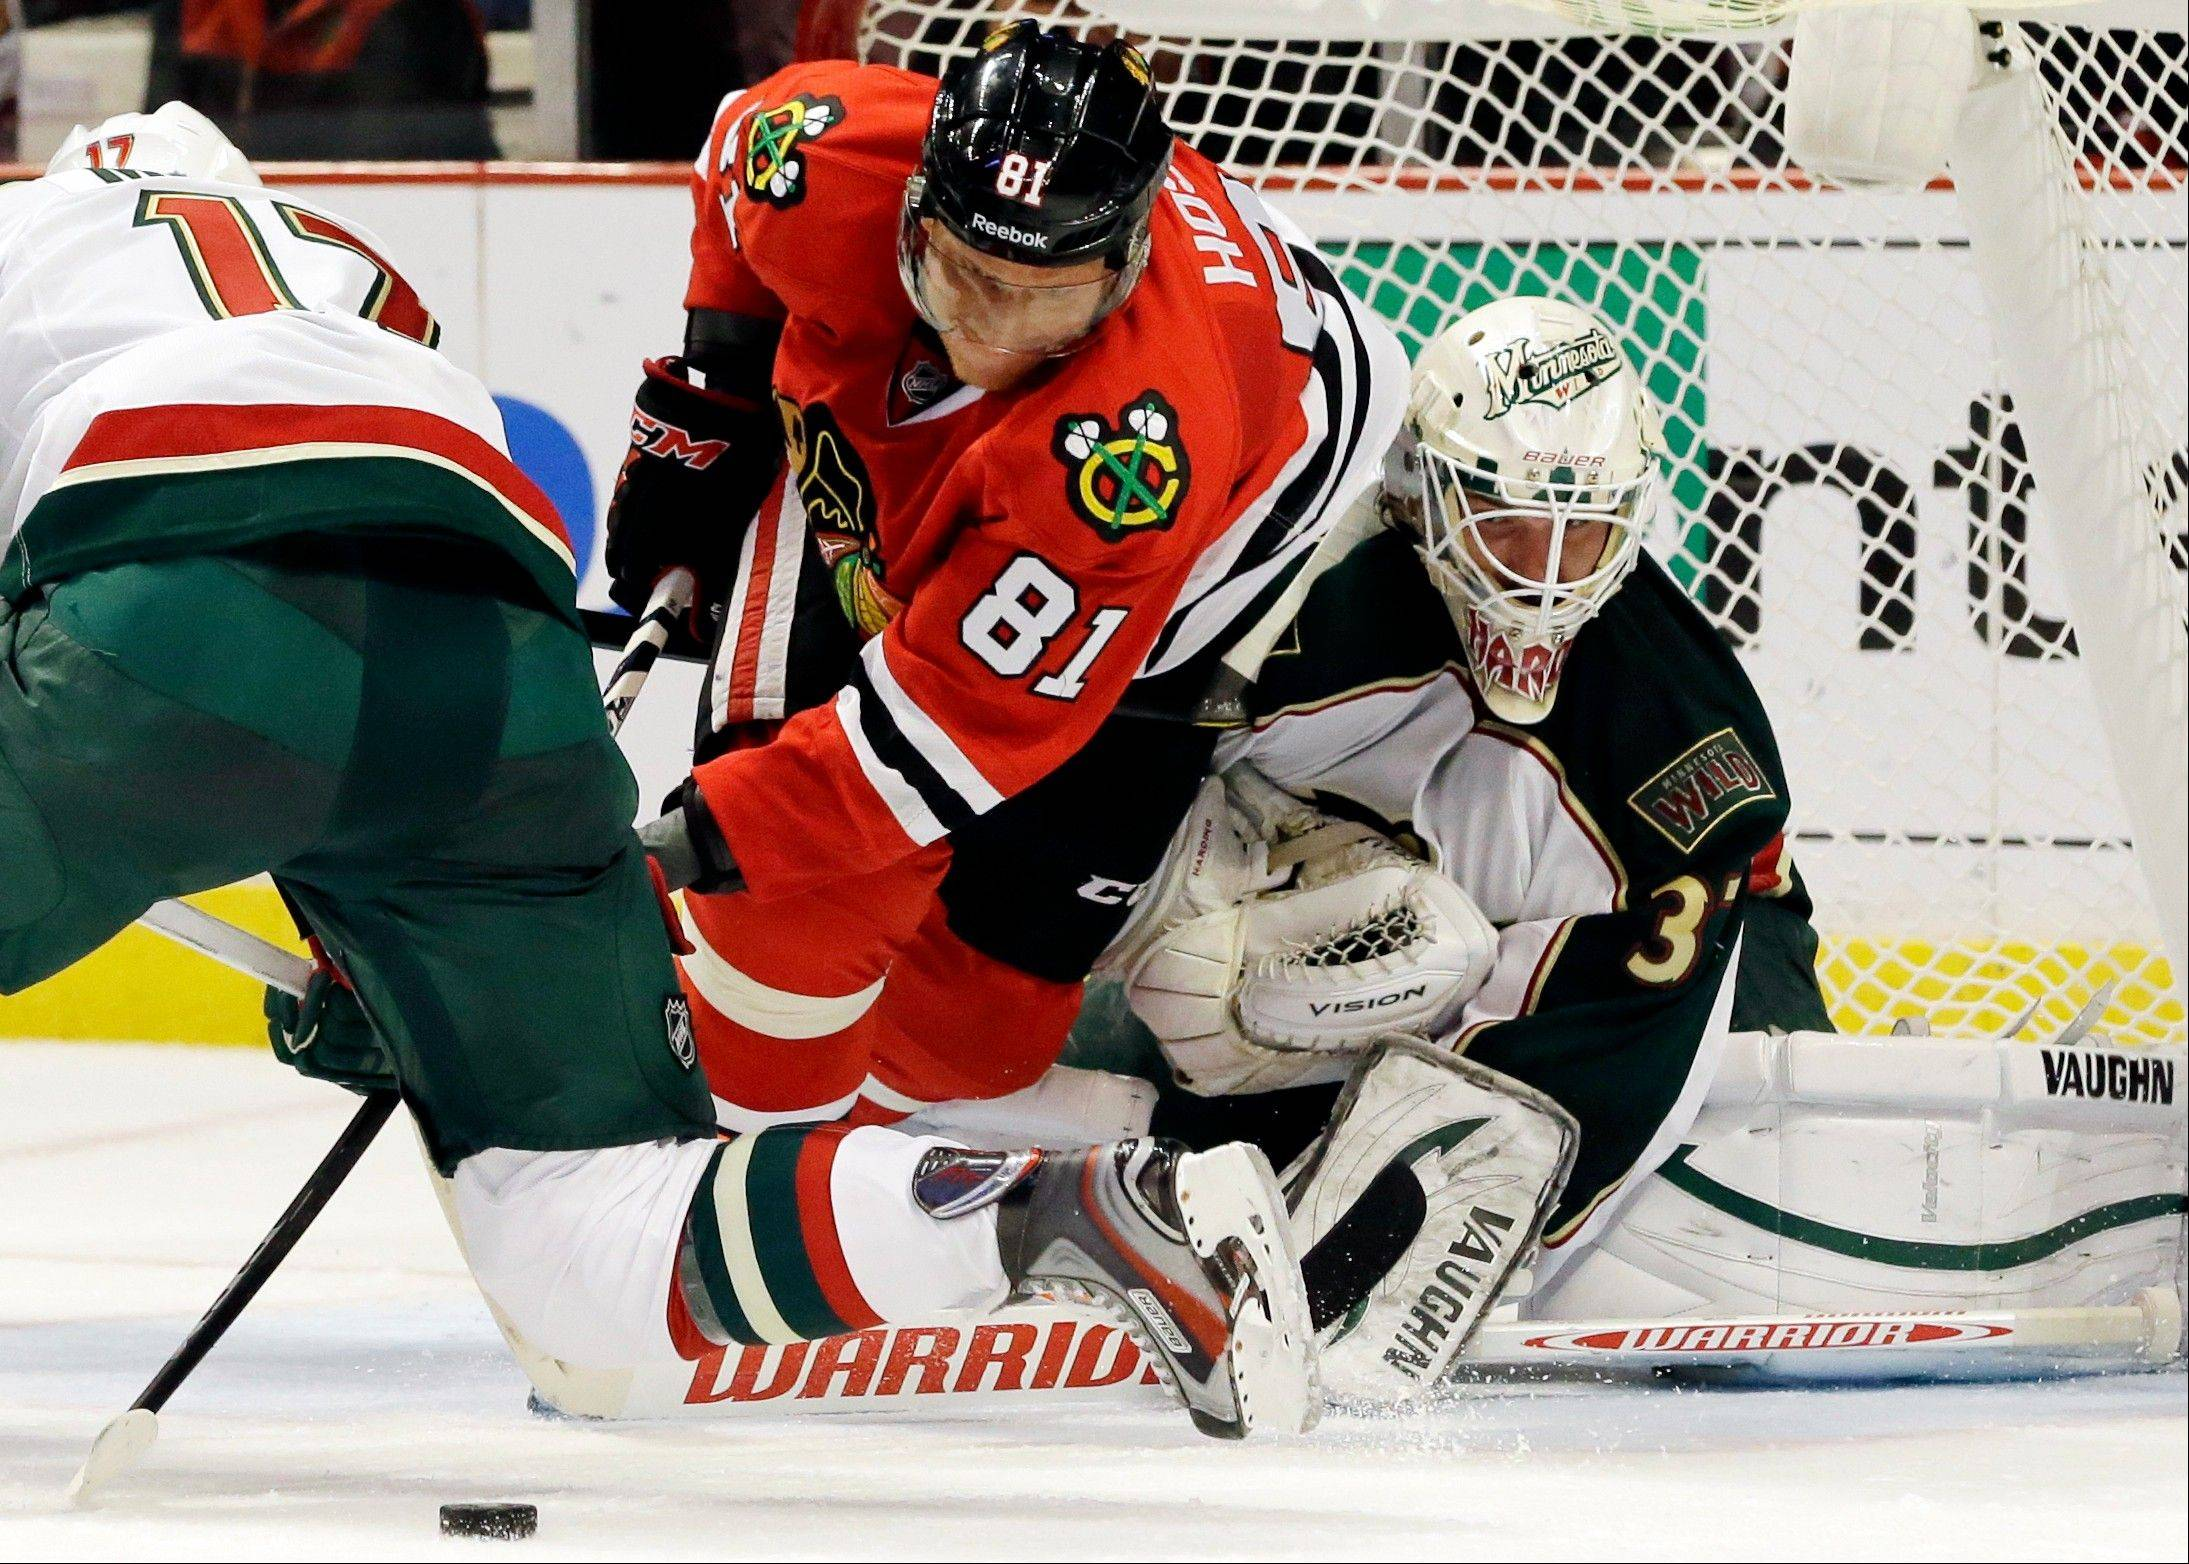 Chicago Blackhawks' Marian Hossa (81) controls the puck against Minnesota Wild goalie Josh Harding (37) during the second period of Game 2 of an NHL hockey Stanley Cup first-round playoff series in Chicago, Friday, May 3, 2013.